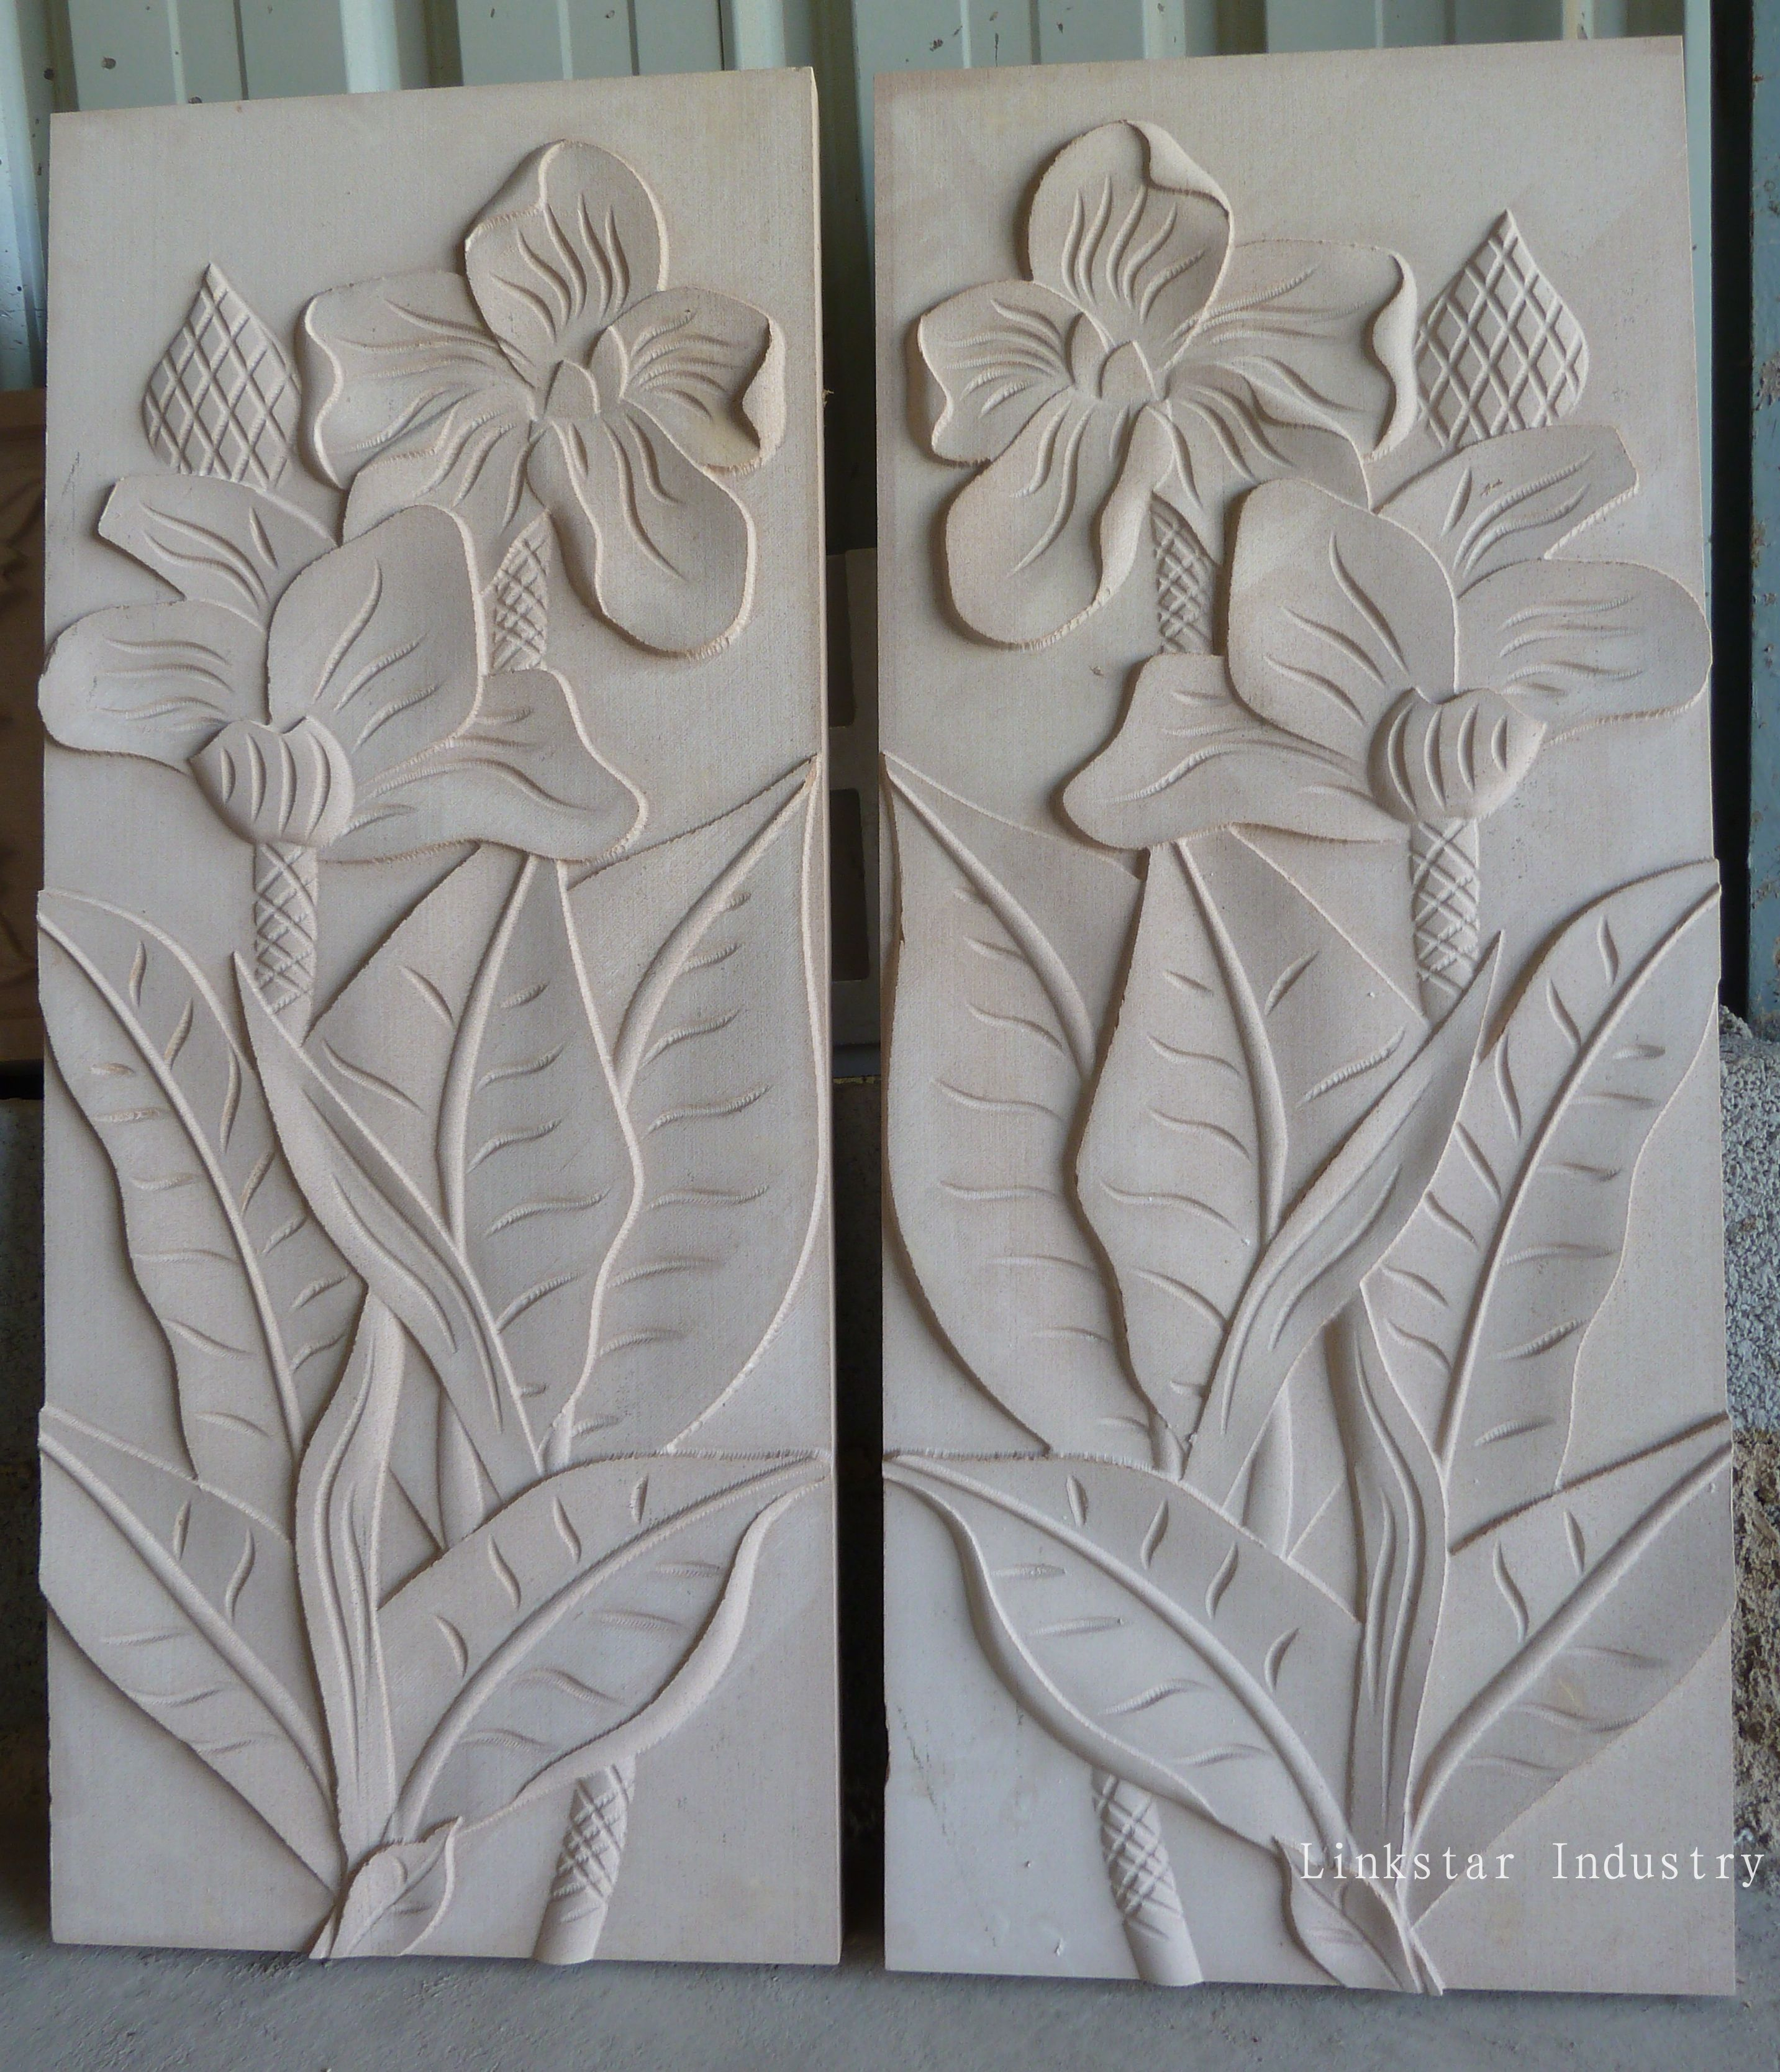 Natural 3d Sandstone Wallart Panel Gives 3d Effect And Works Suitably As Exterior Wall Tiles Plaster Wall Art Clay Wall Art Wall Carvings